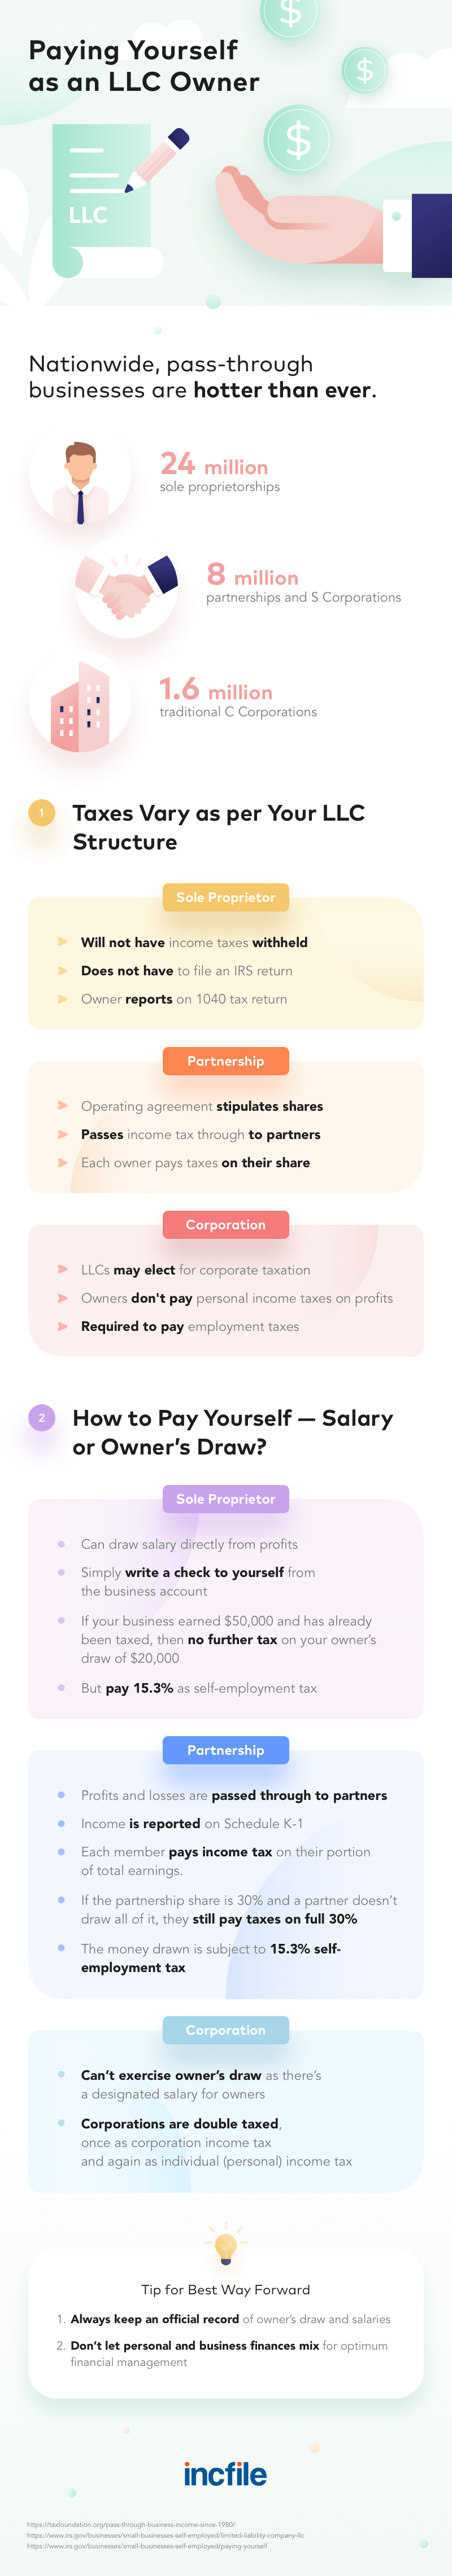 how to pay yourself as an LLC owner - infographic